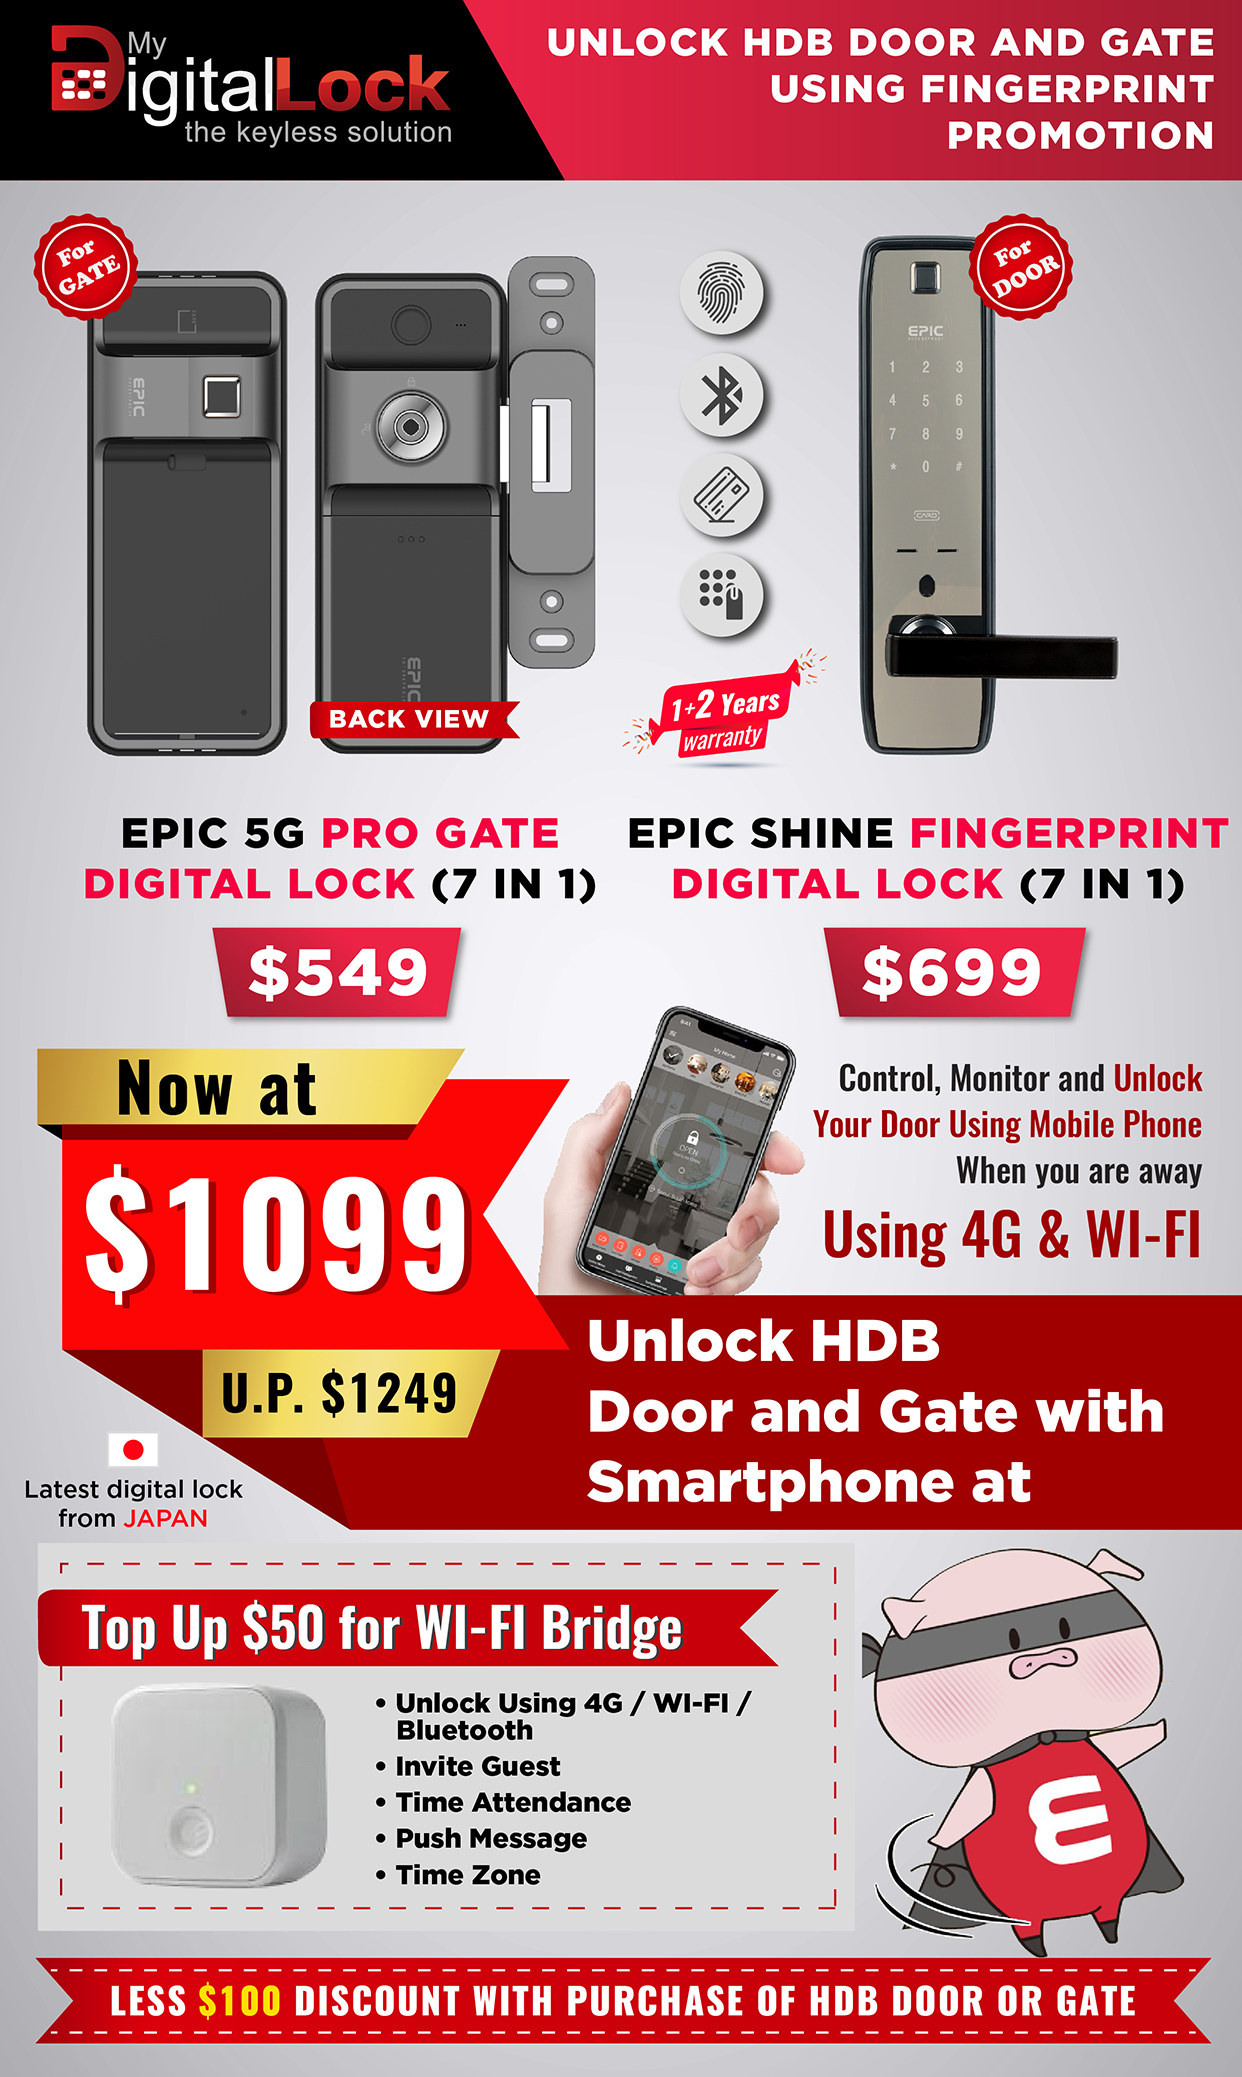 Buy Unlock HDB Door and-Gate digital lock using Card @ My Digital Lock. Call 9067 7990